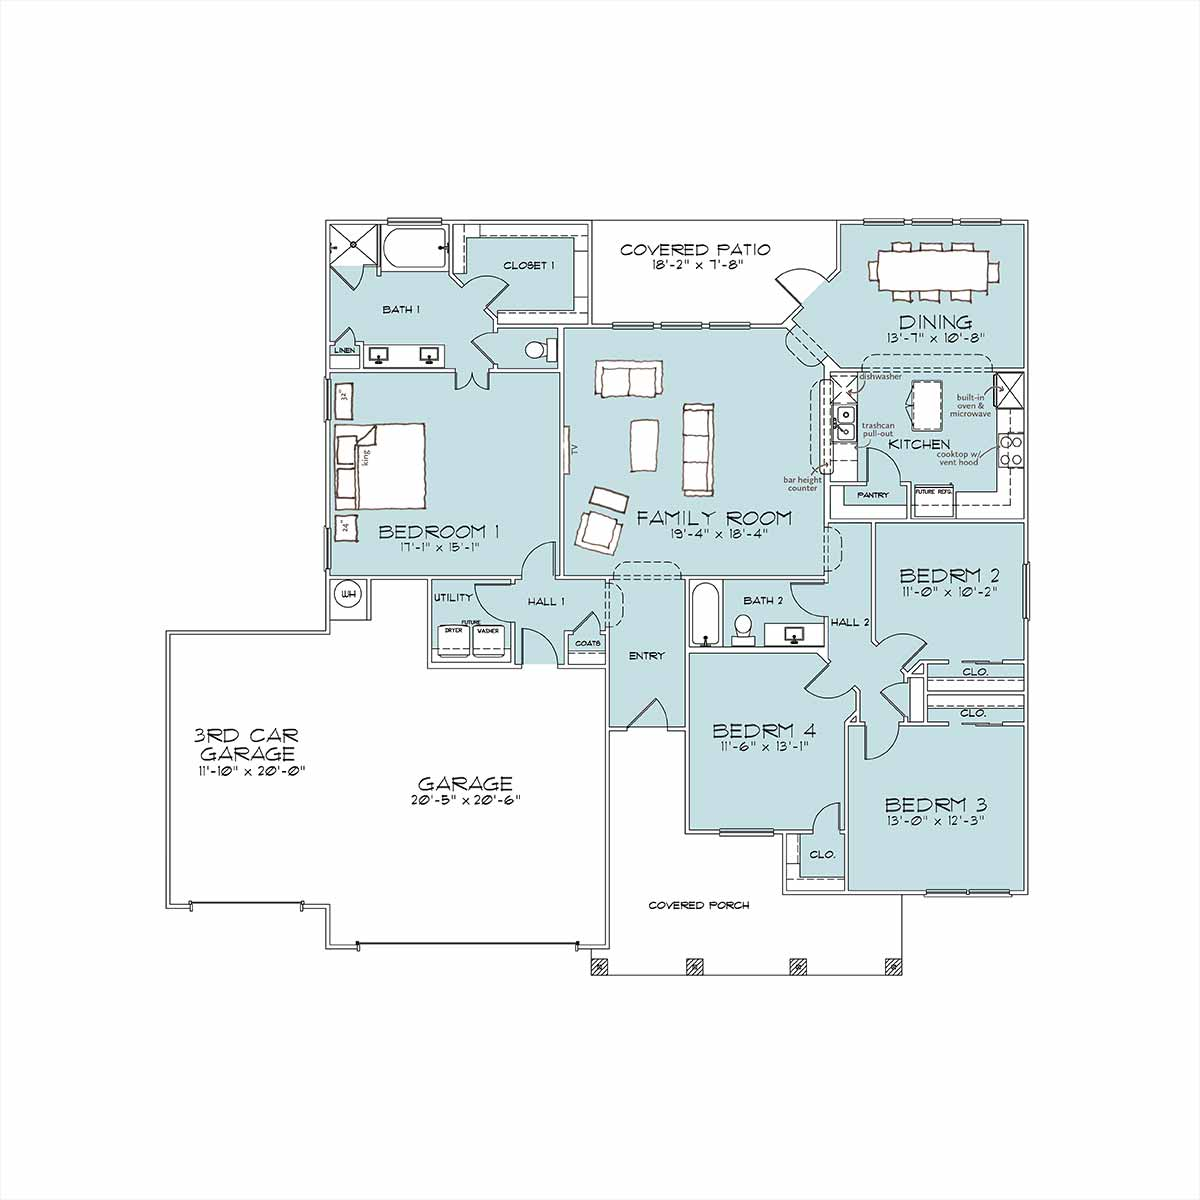 Ivy Floor Plan by Omega Builders in Valley Ranch